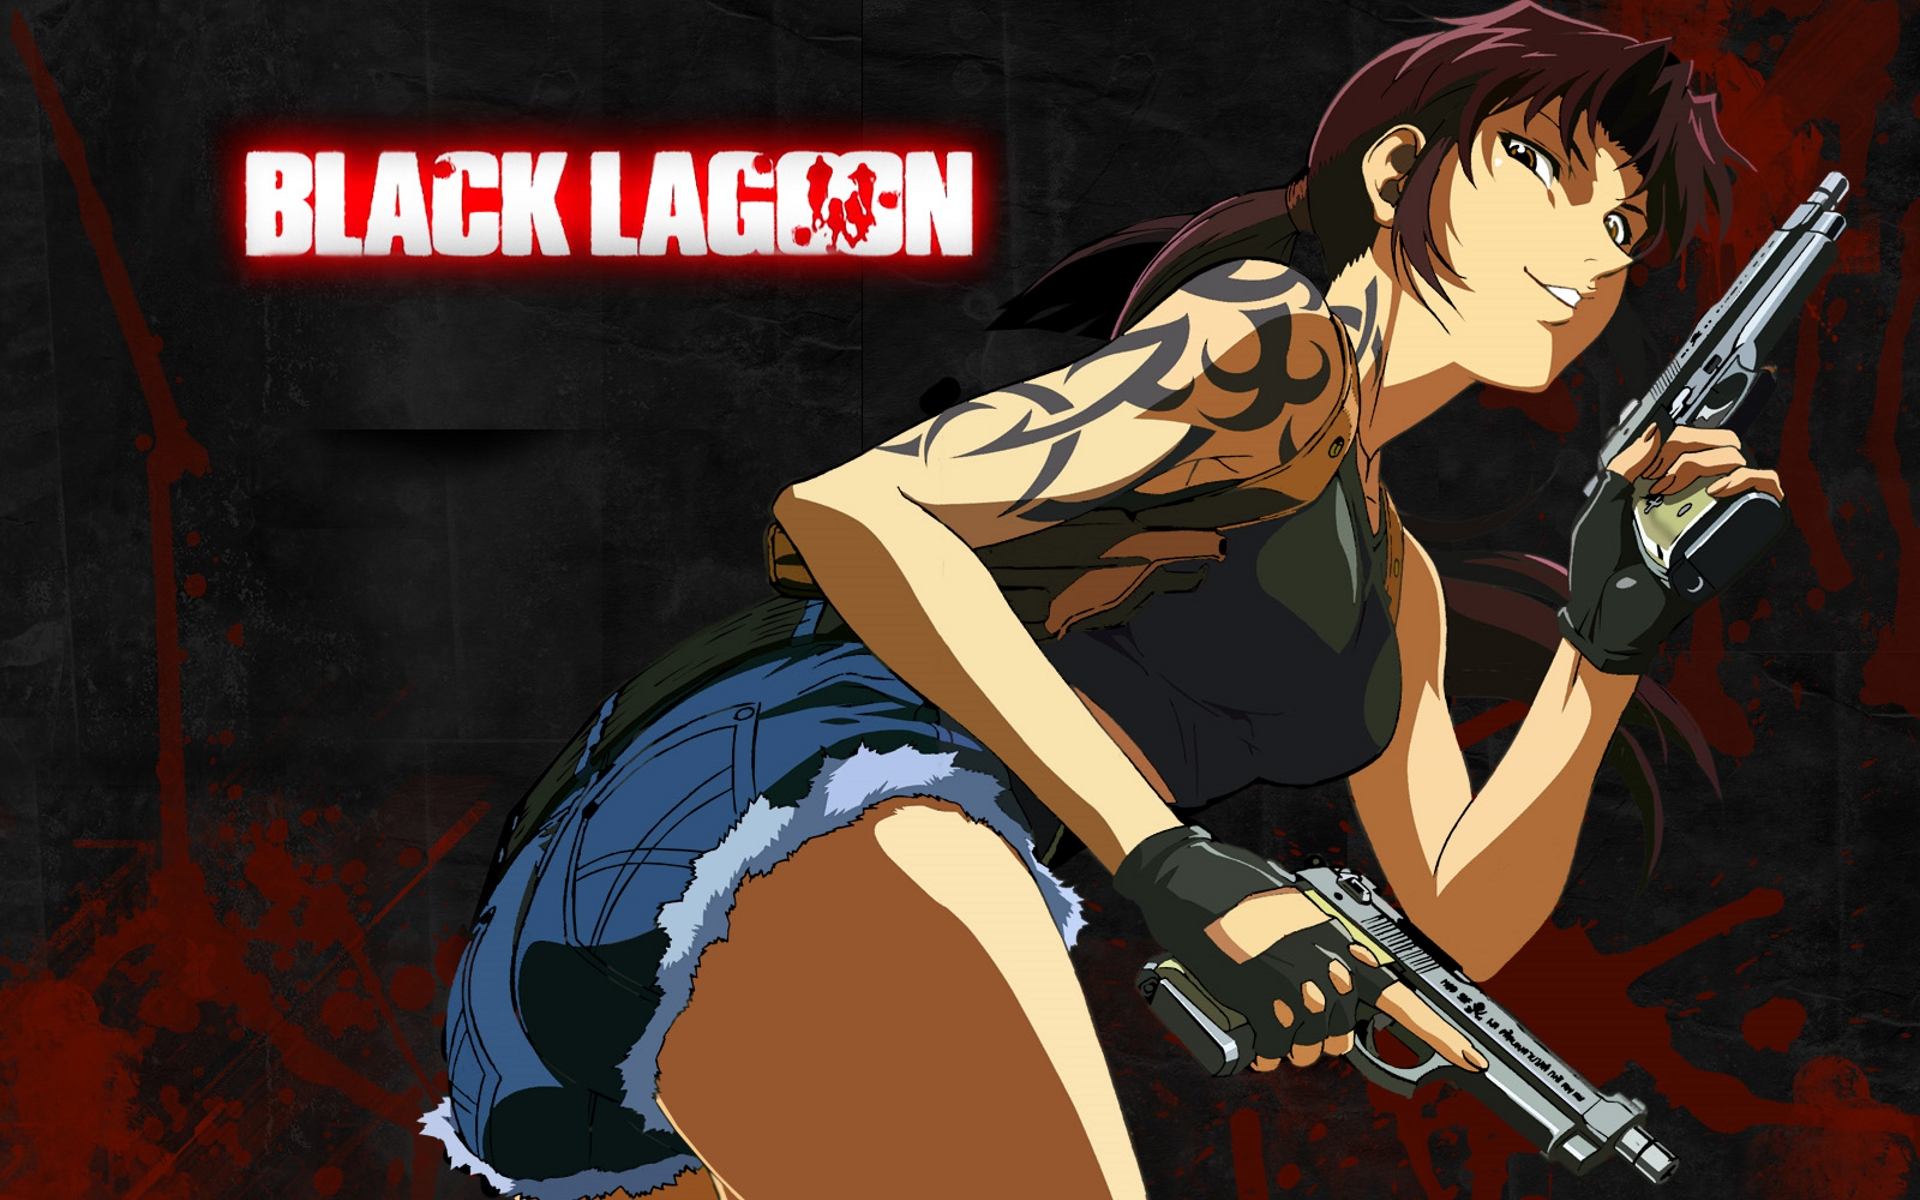 Black Lagoon Wallpaper Revy Black Lagoon Hot 1346239 Hd